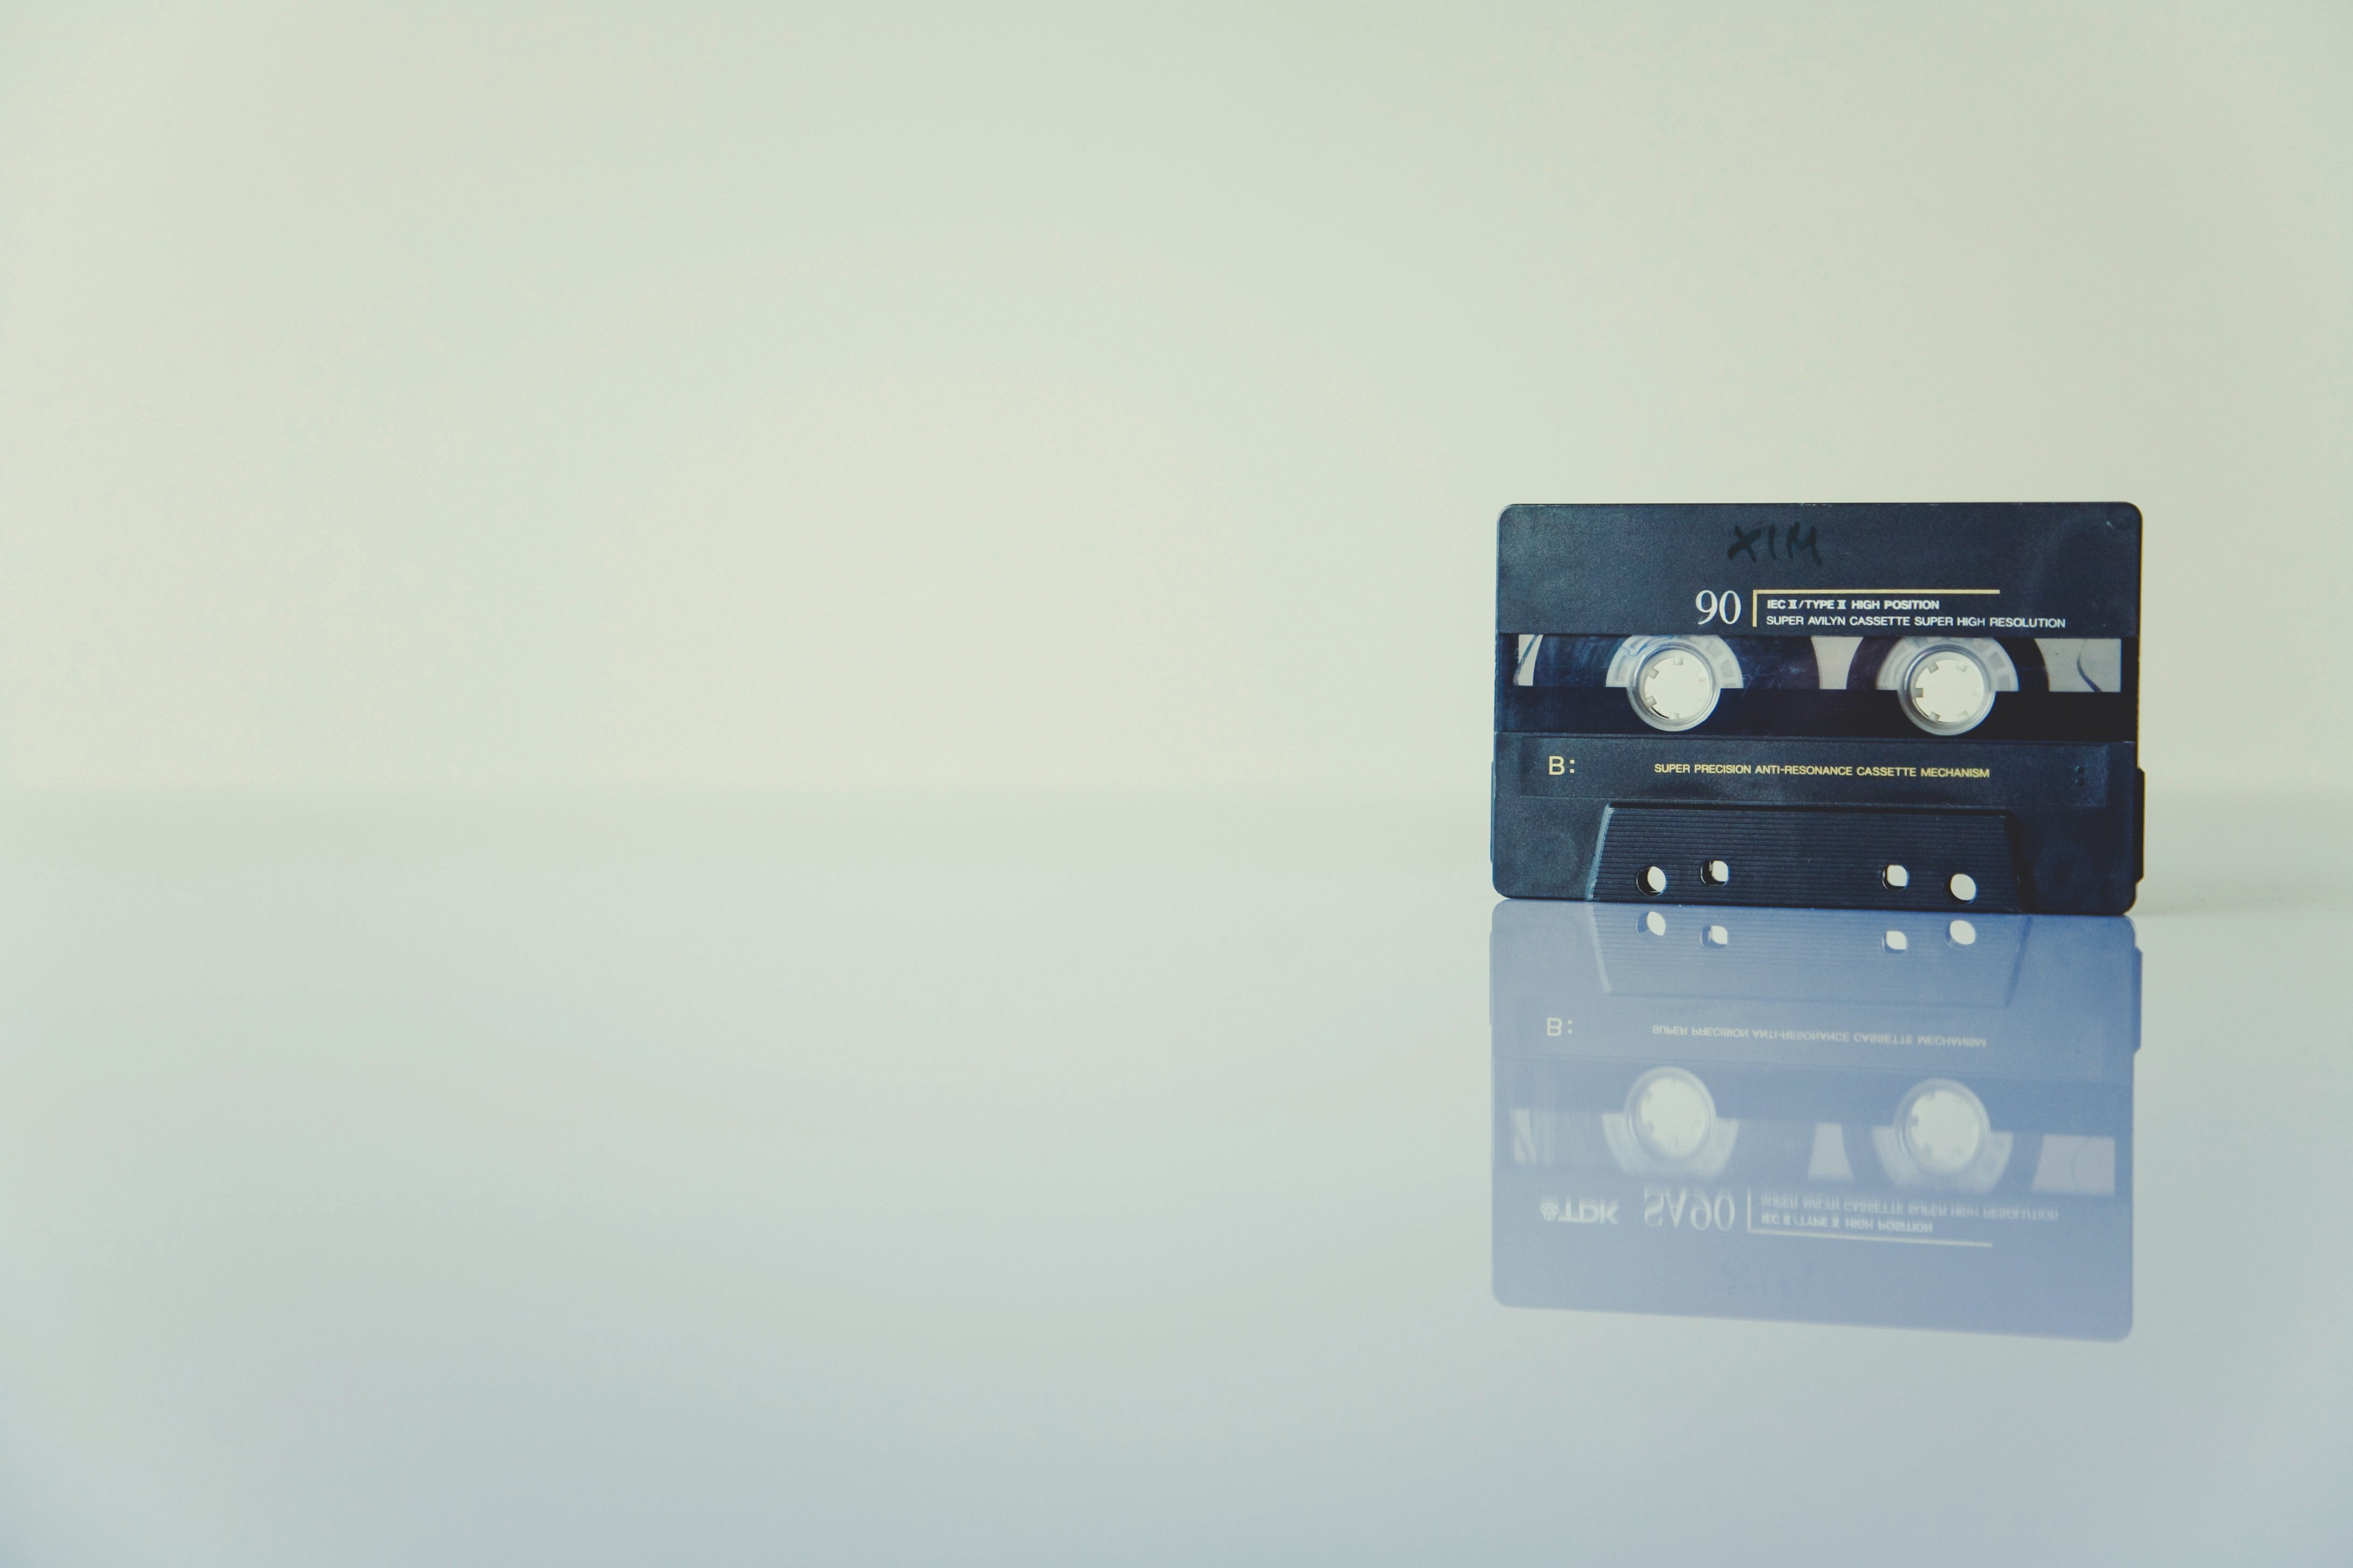 A dark cassette tape standing on a shiny tabletop.